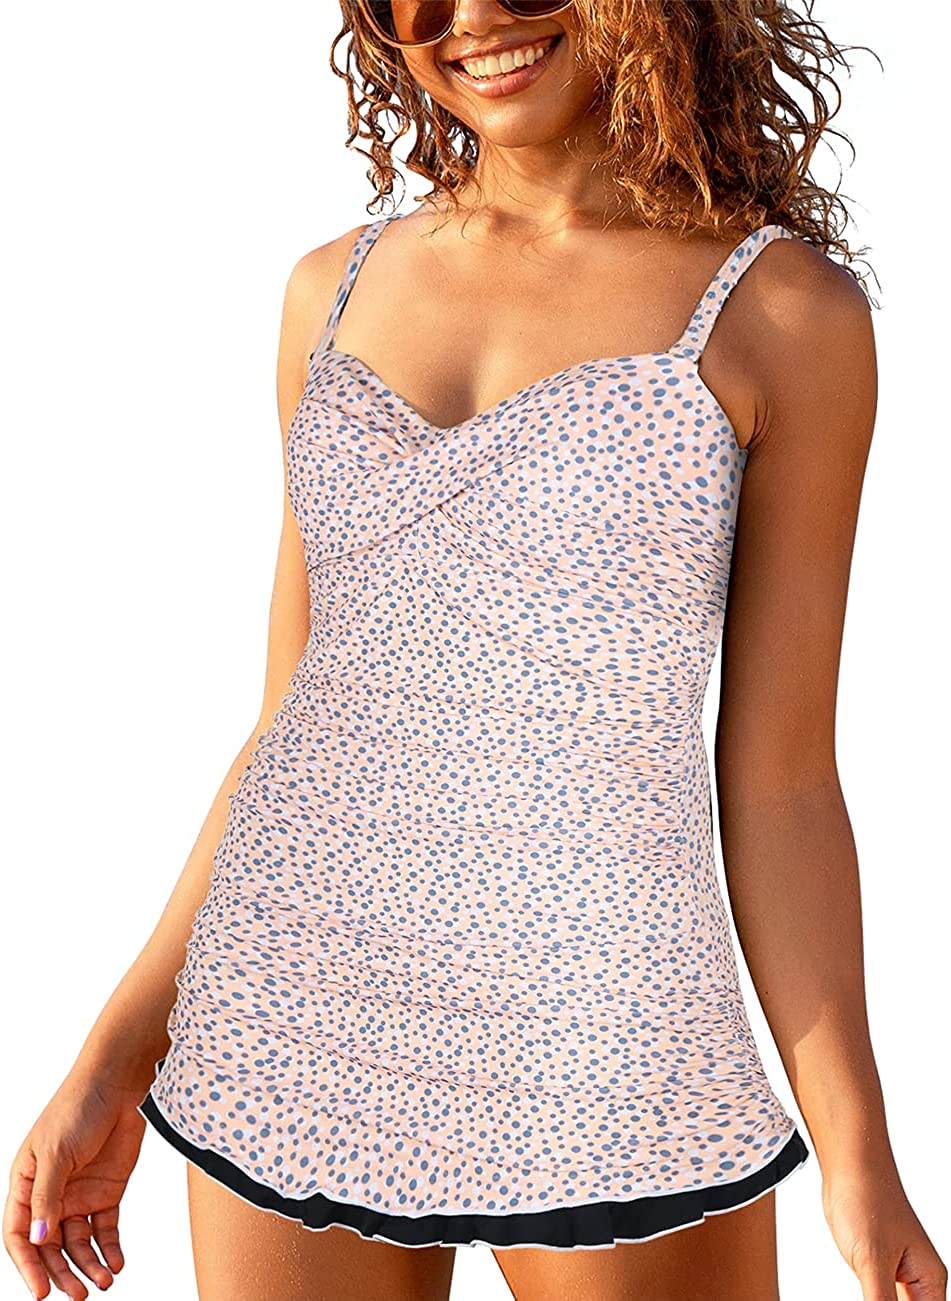 Ranking integrated 1st place coastal rose Women's One Piece Ruffle Jacksonville Mall Ruched Swimsuits Swimdress